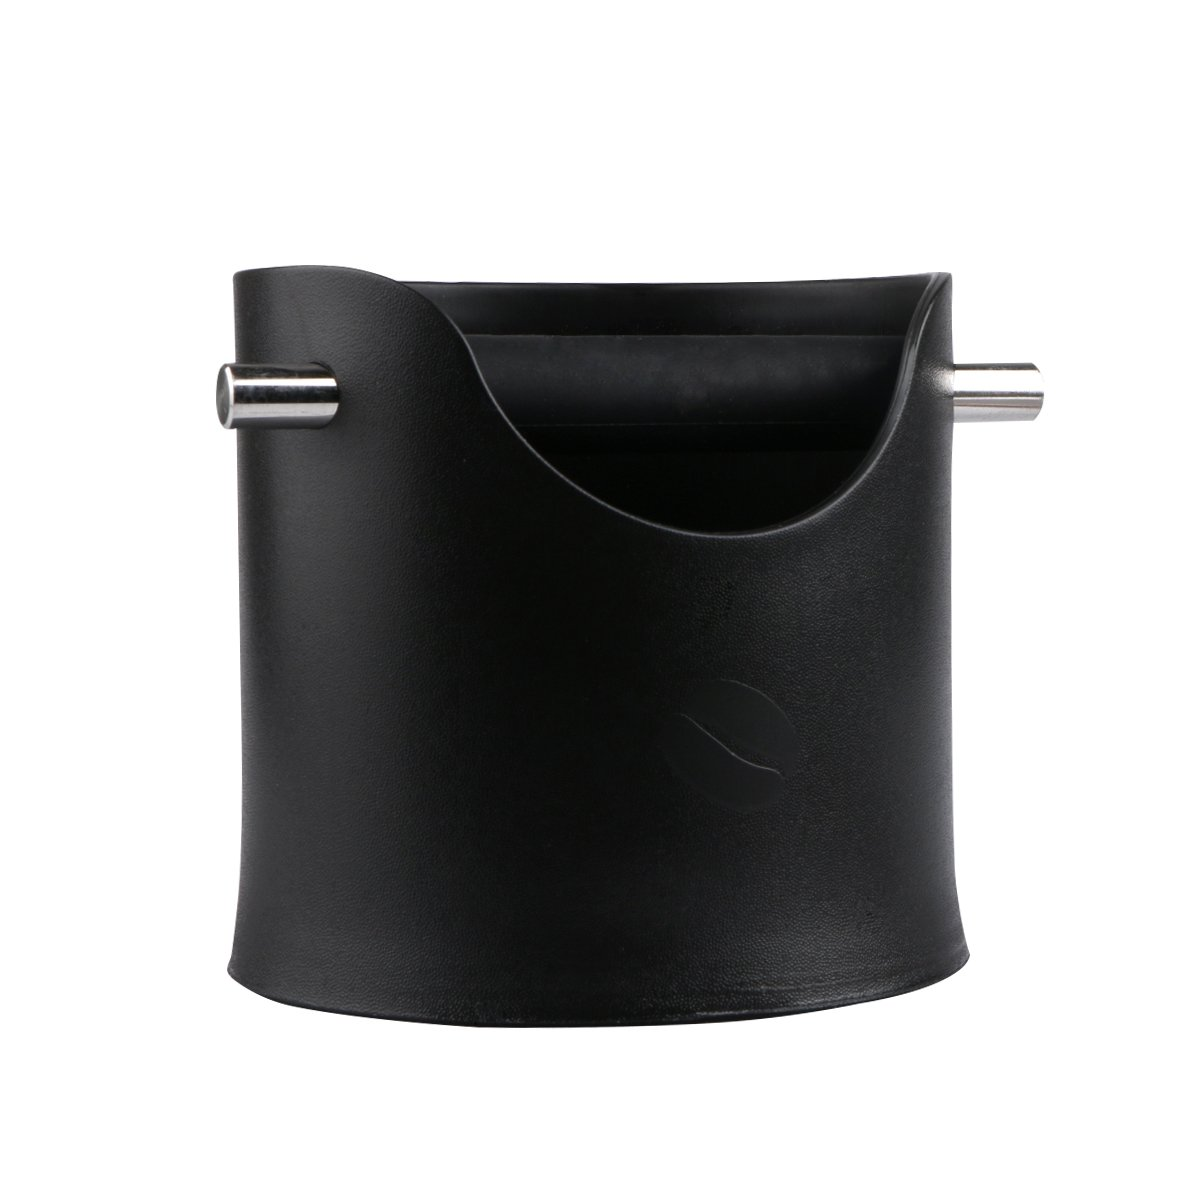 Benbo Espresso Knock Box 11.6CM11CM Coffee Grind Knock Box for Coffee Grounds Disposal